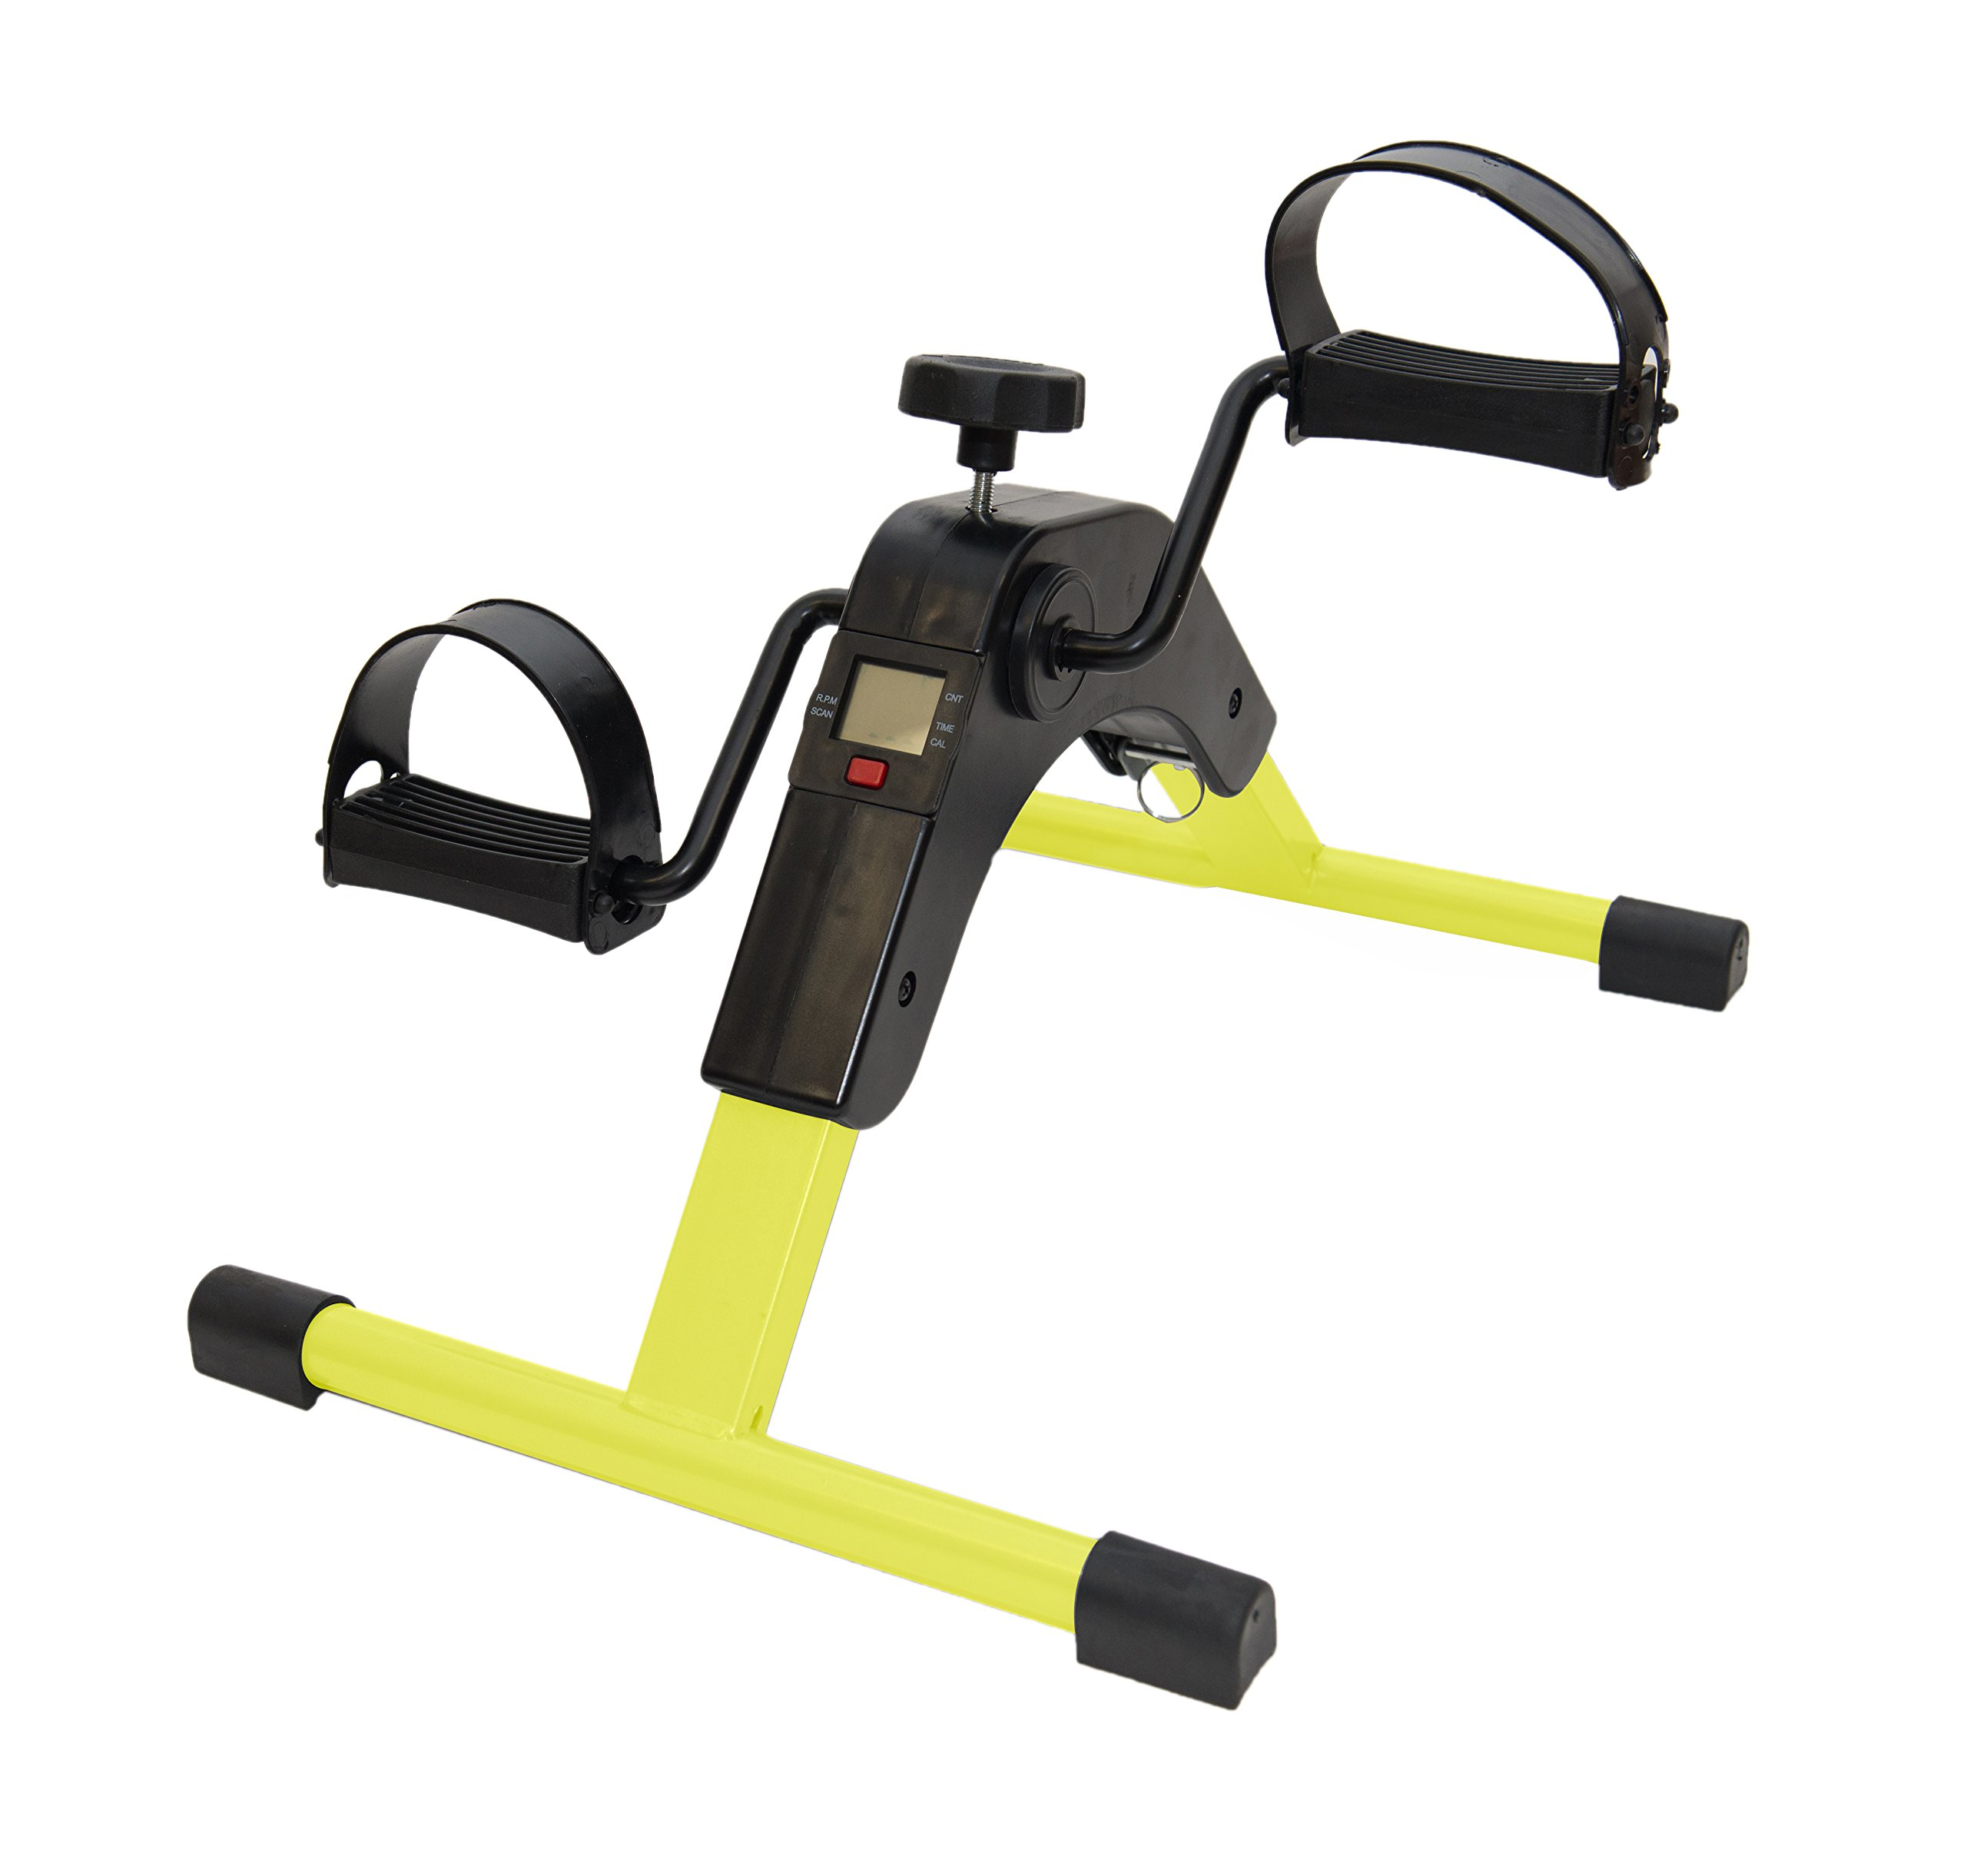 AdirMed Digital Foldable Mini Floor Foot Pedal Exerciser Leg Machine - Under Desk Exerciser - Fully Assembled No Tools Required (Yellow) by AdirMed (Image #1)